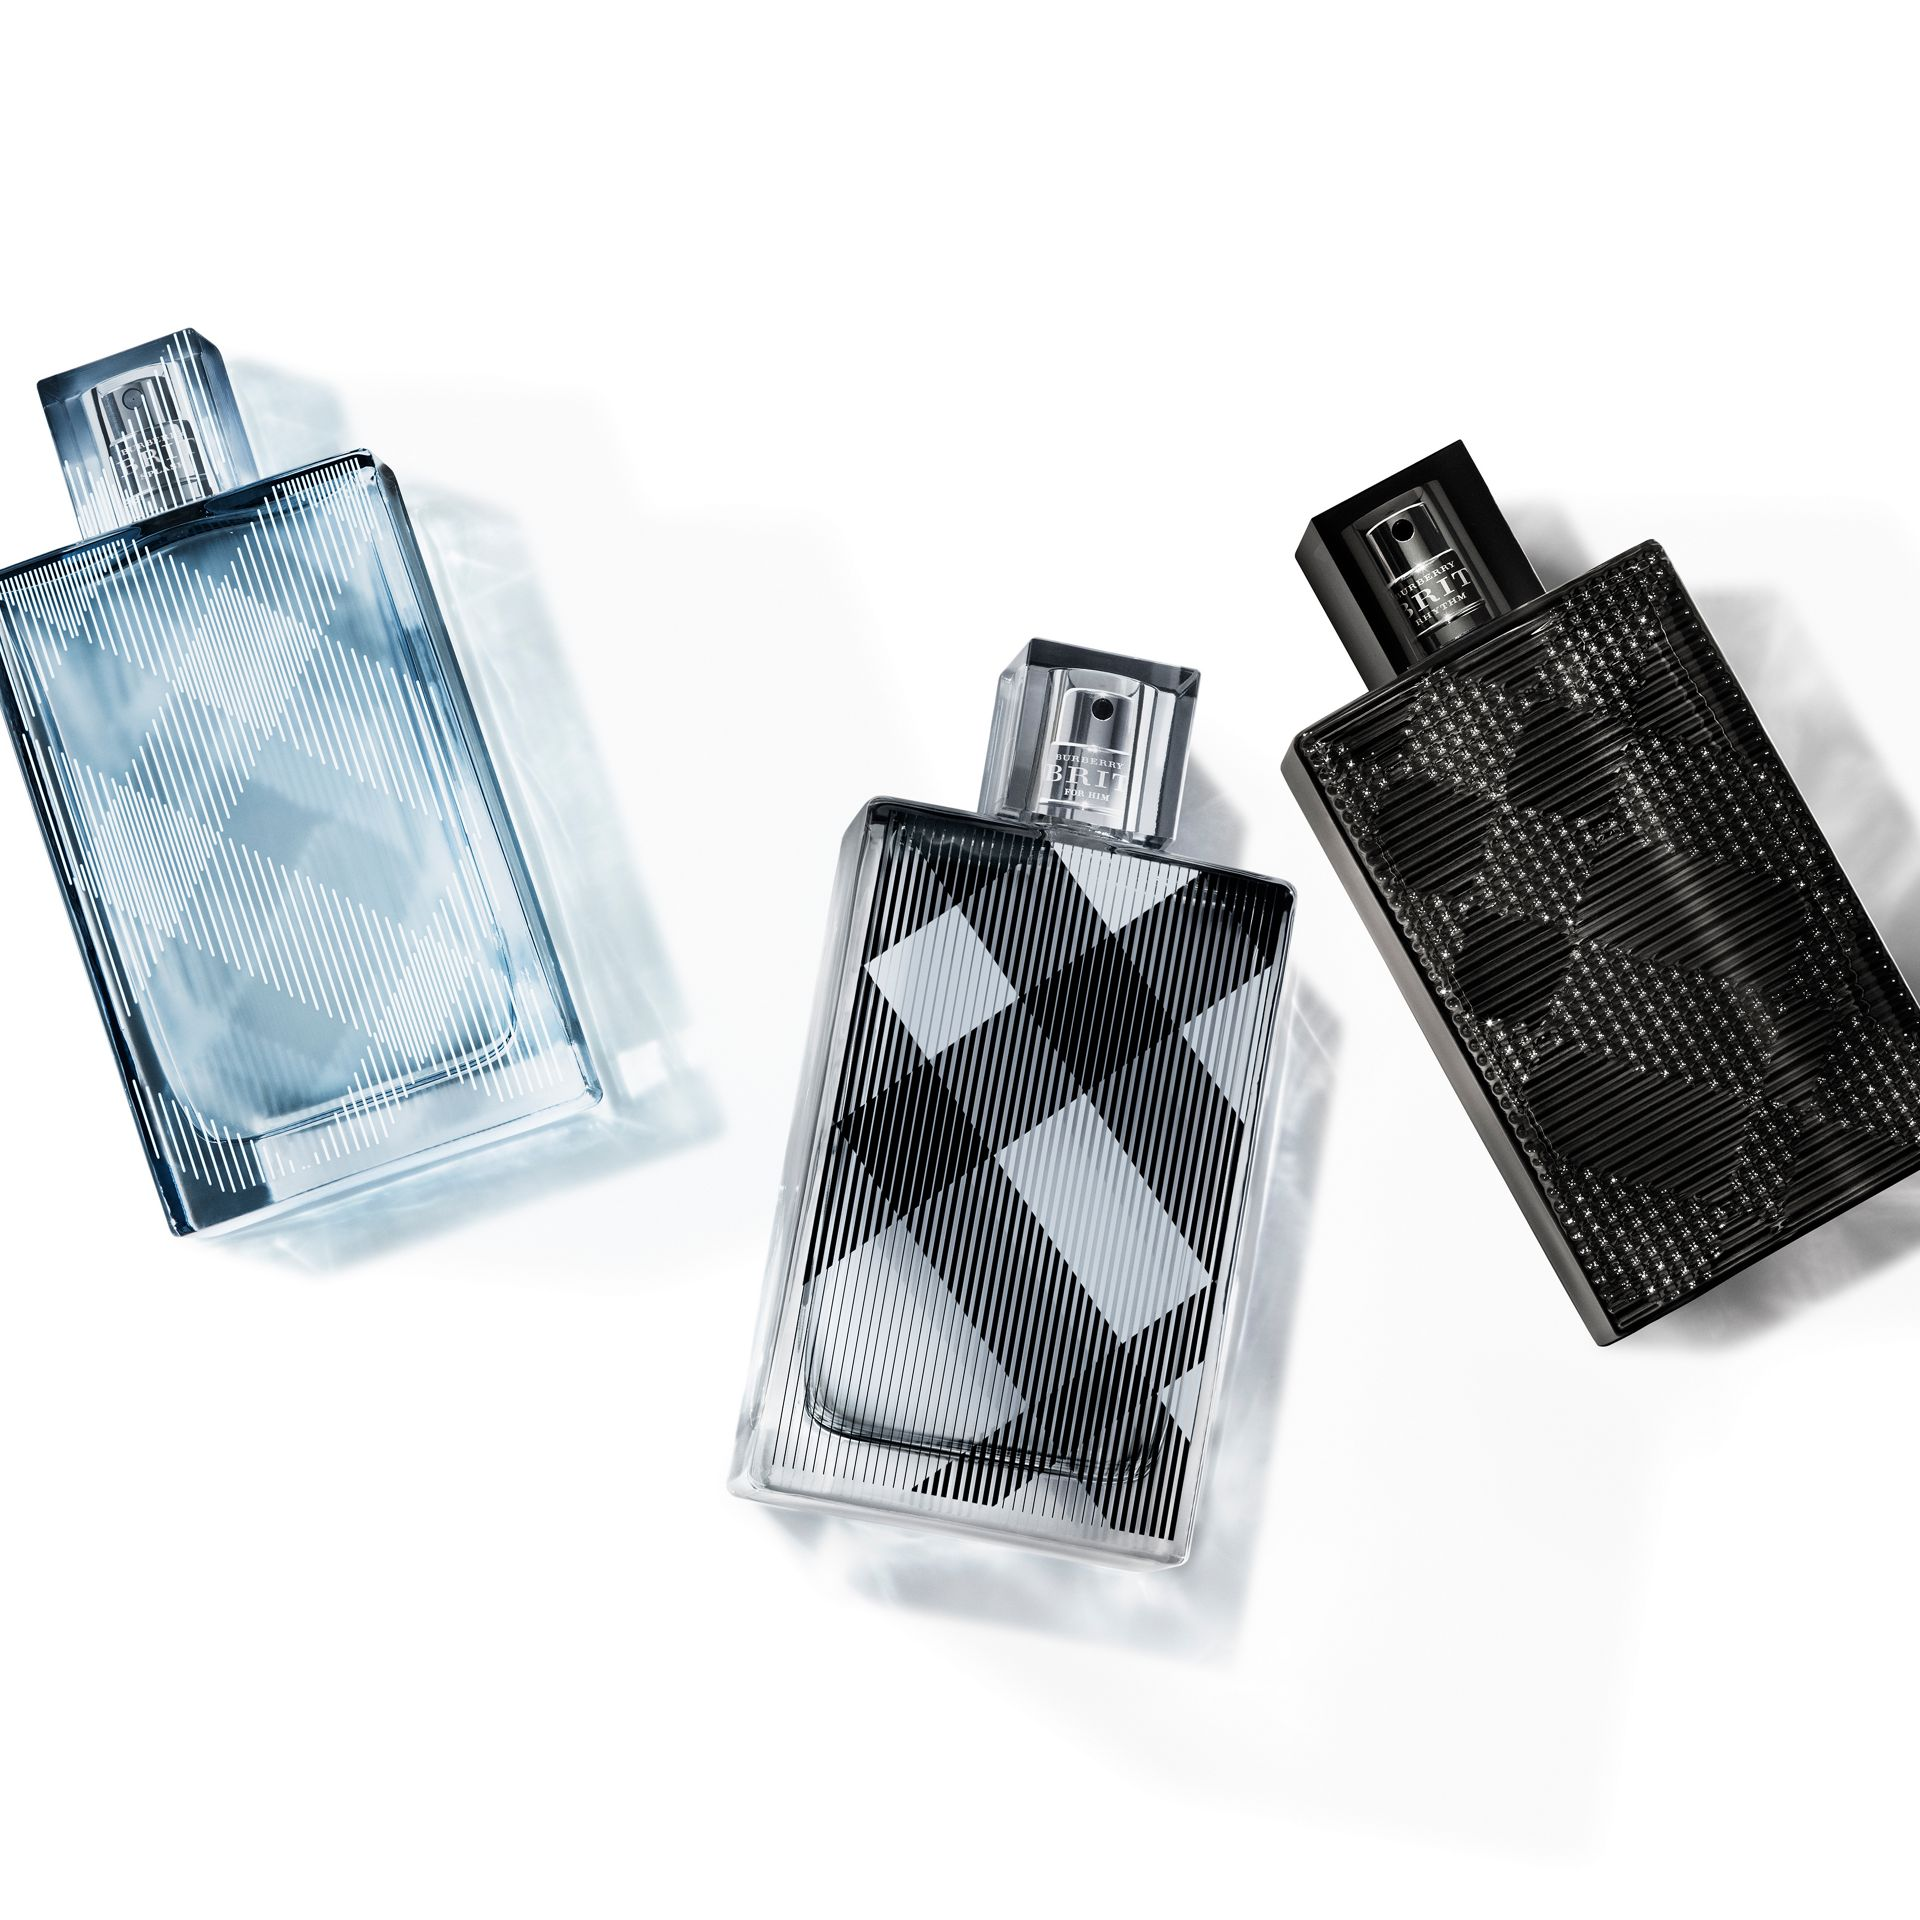 Burberry Brit Splash Eau de Toilette 100 ml - Uomo | Burberry - immagine della galleria 1